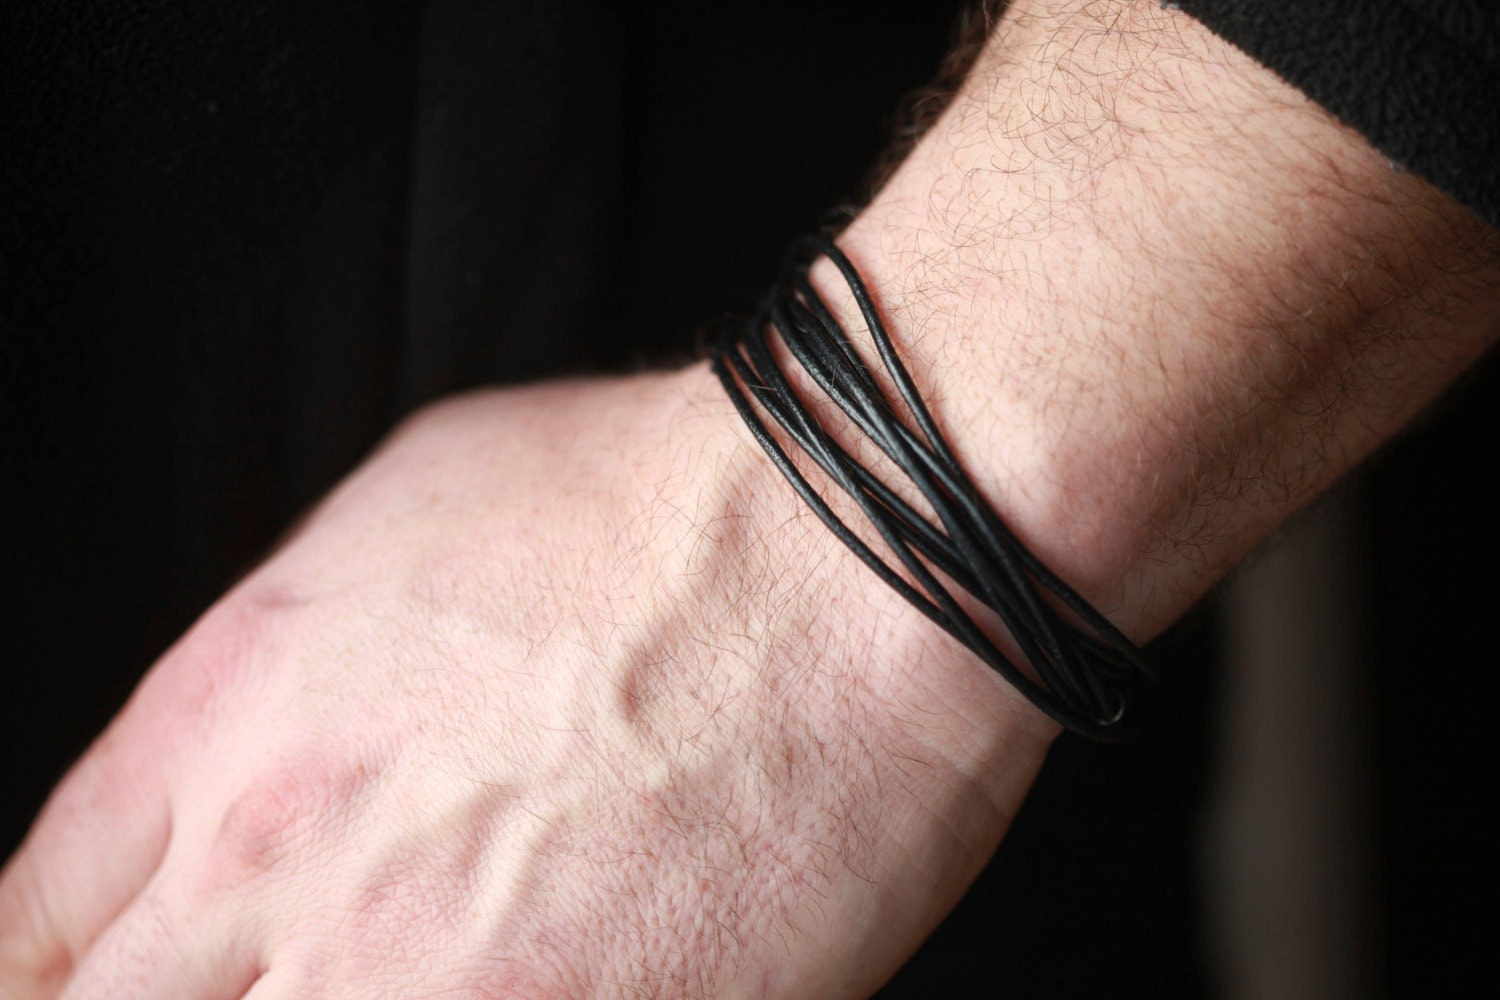 london tusk image s of bracelet leather rogue men john wrap greed mens black jewellery links